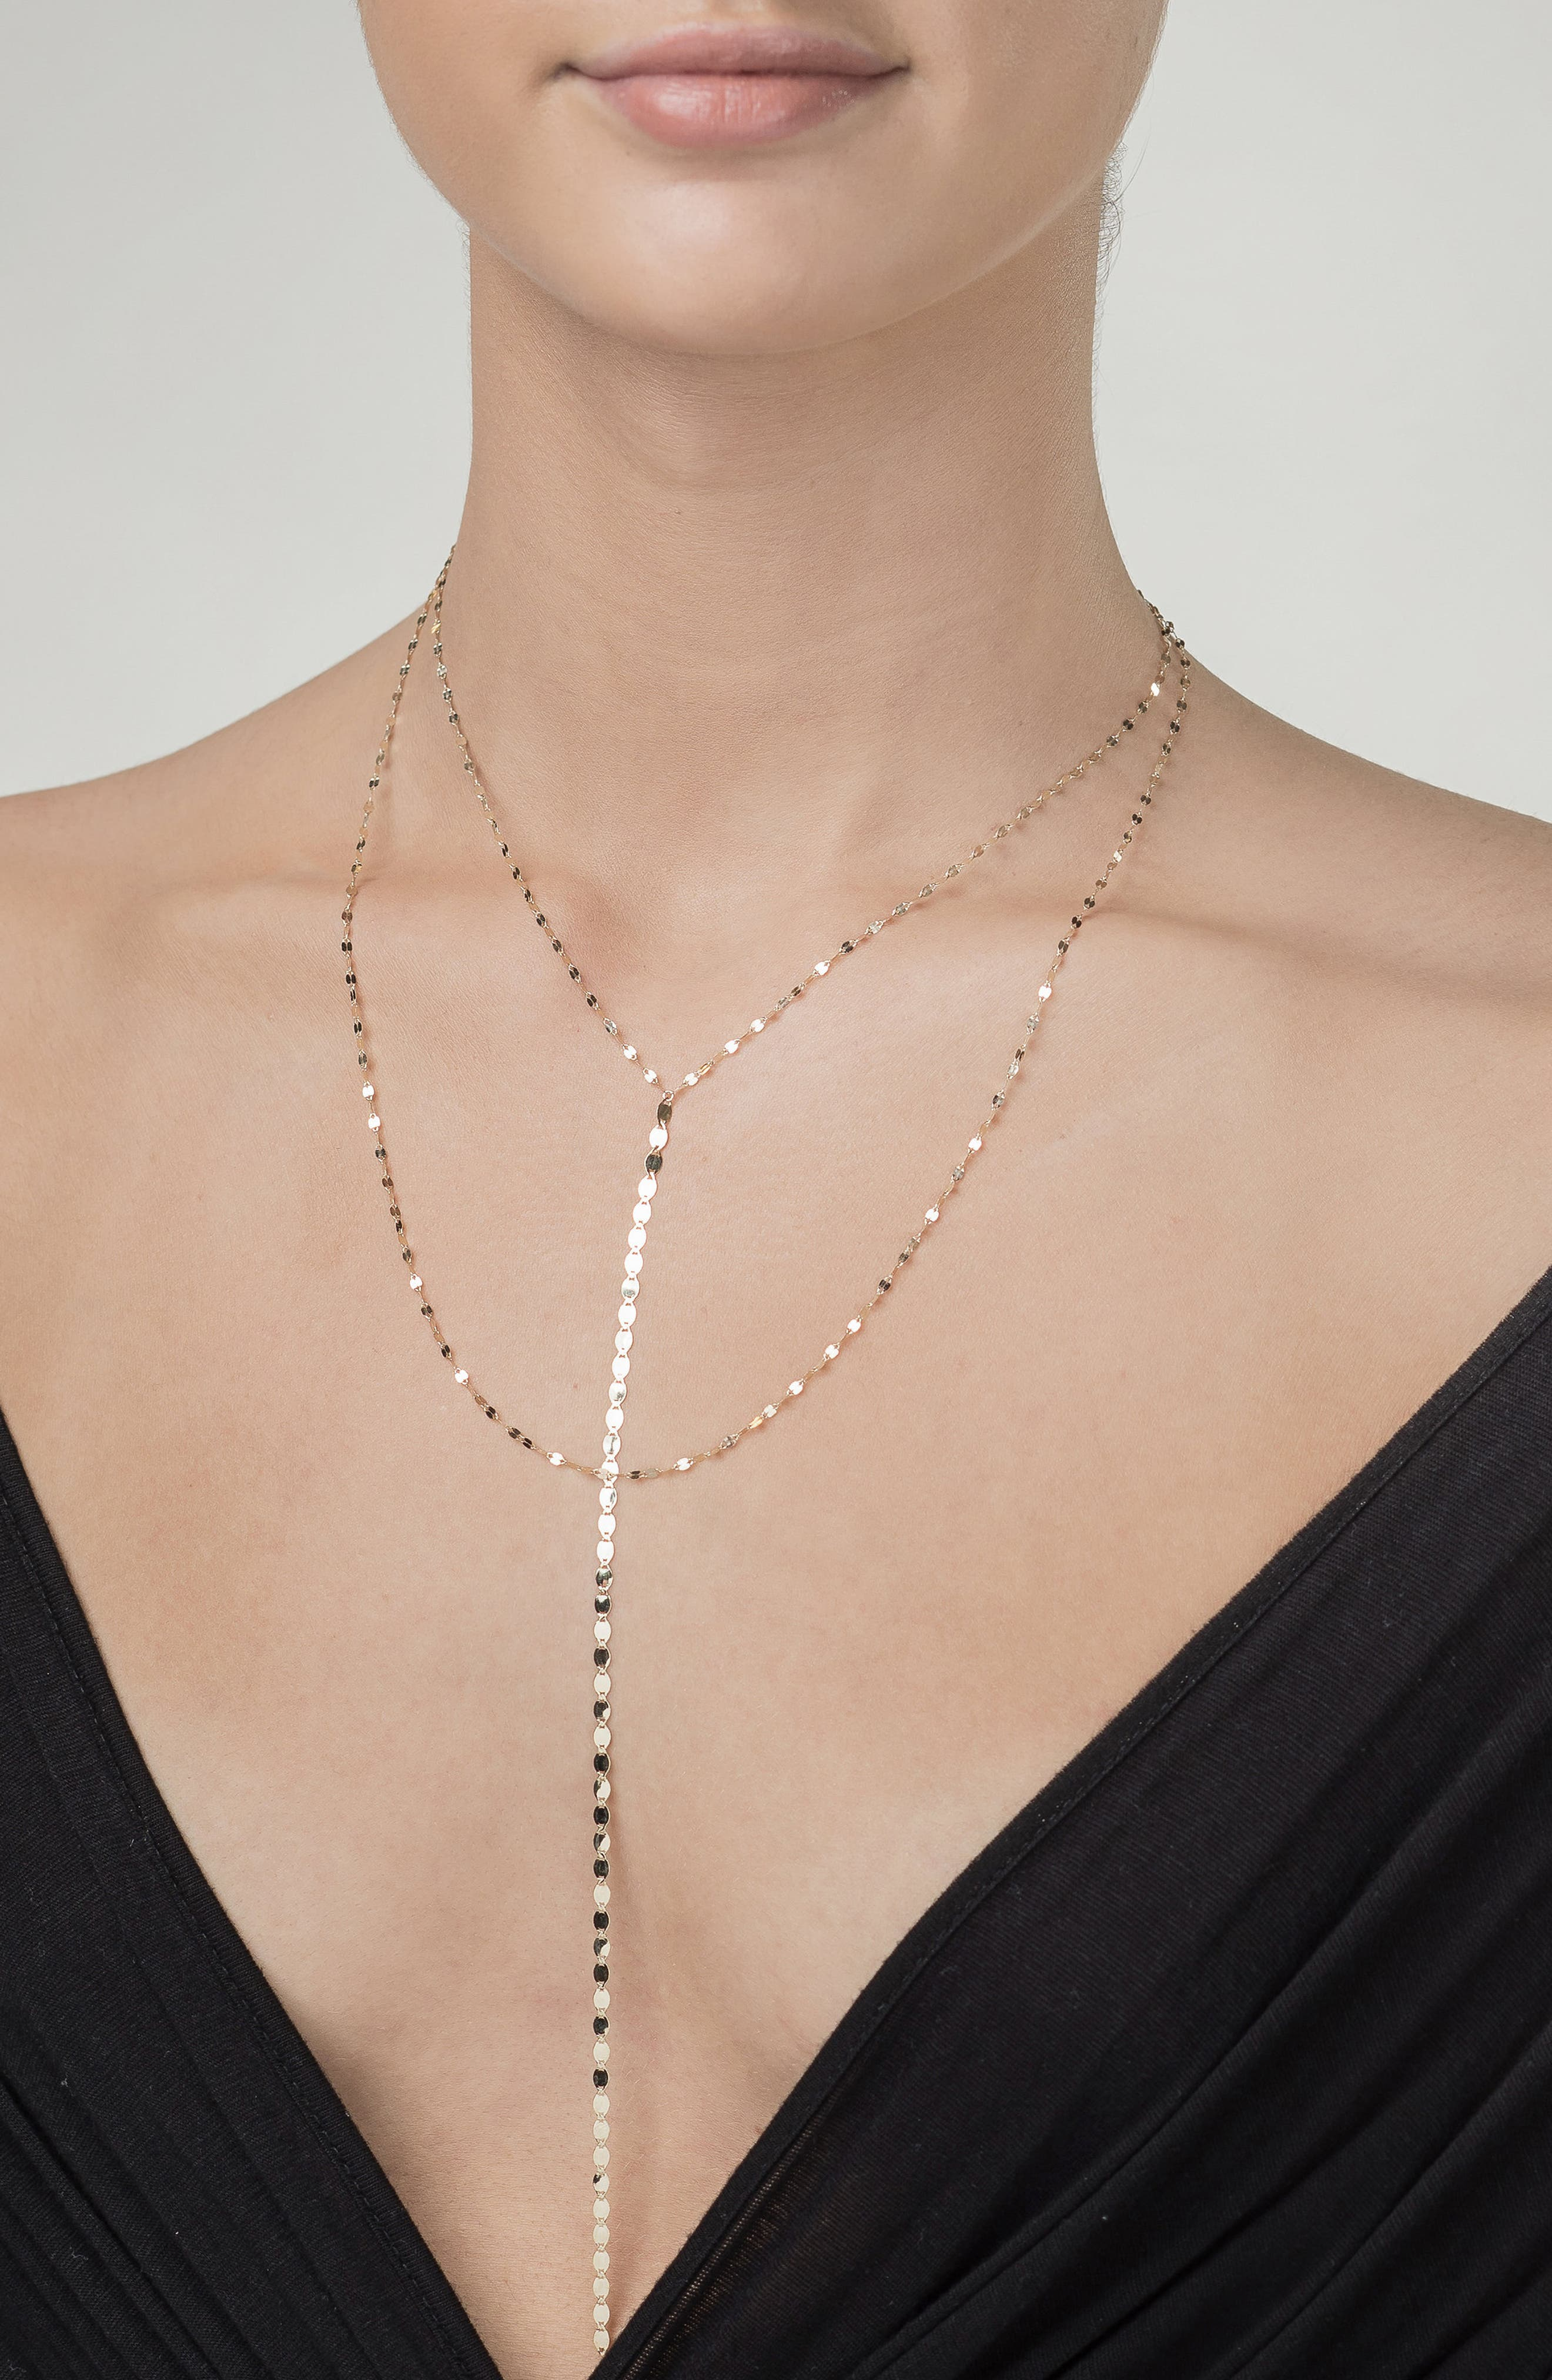 'Nude Blake' Multistrand Drop Necklace,                             Alternate thumbnail 2, color,                             YELLOW GOLD